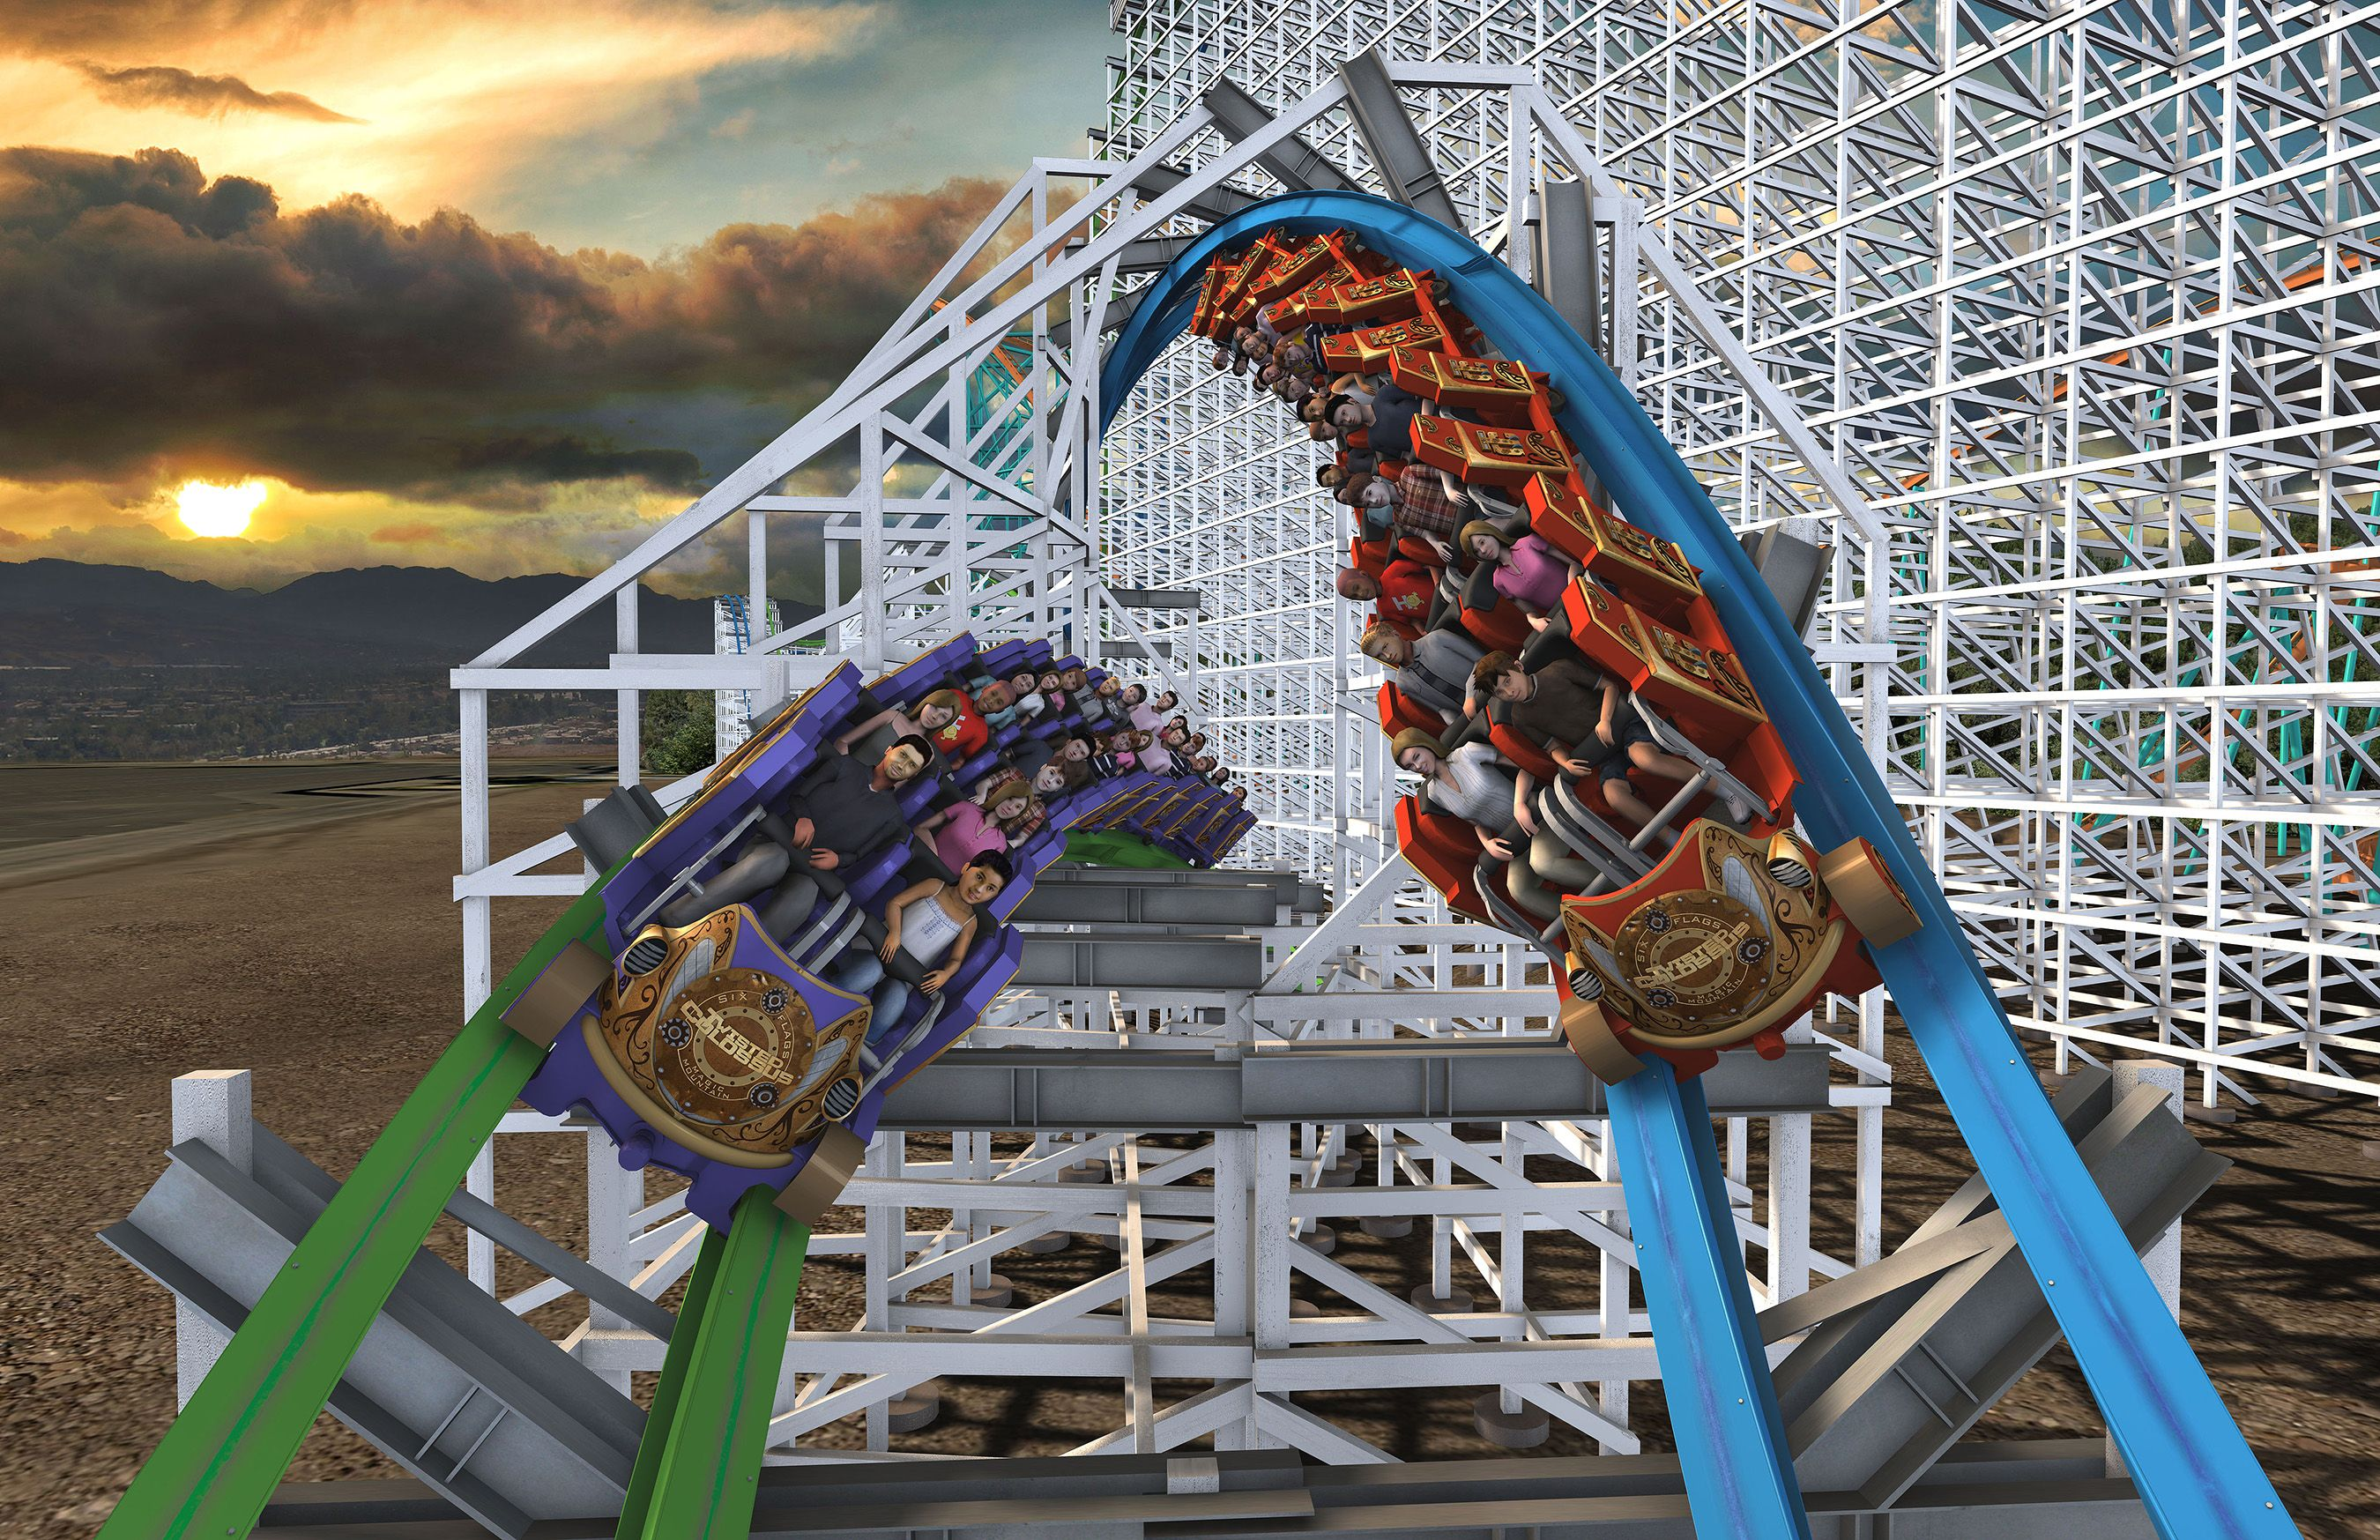 Six Flags Magic Mountain Announces Record Breaking Coaster Twisted Colossus Iconic Woodie Returns For 2 New Roller Coaster Roller Coaster Water Theme Park